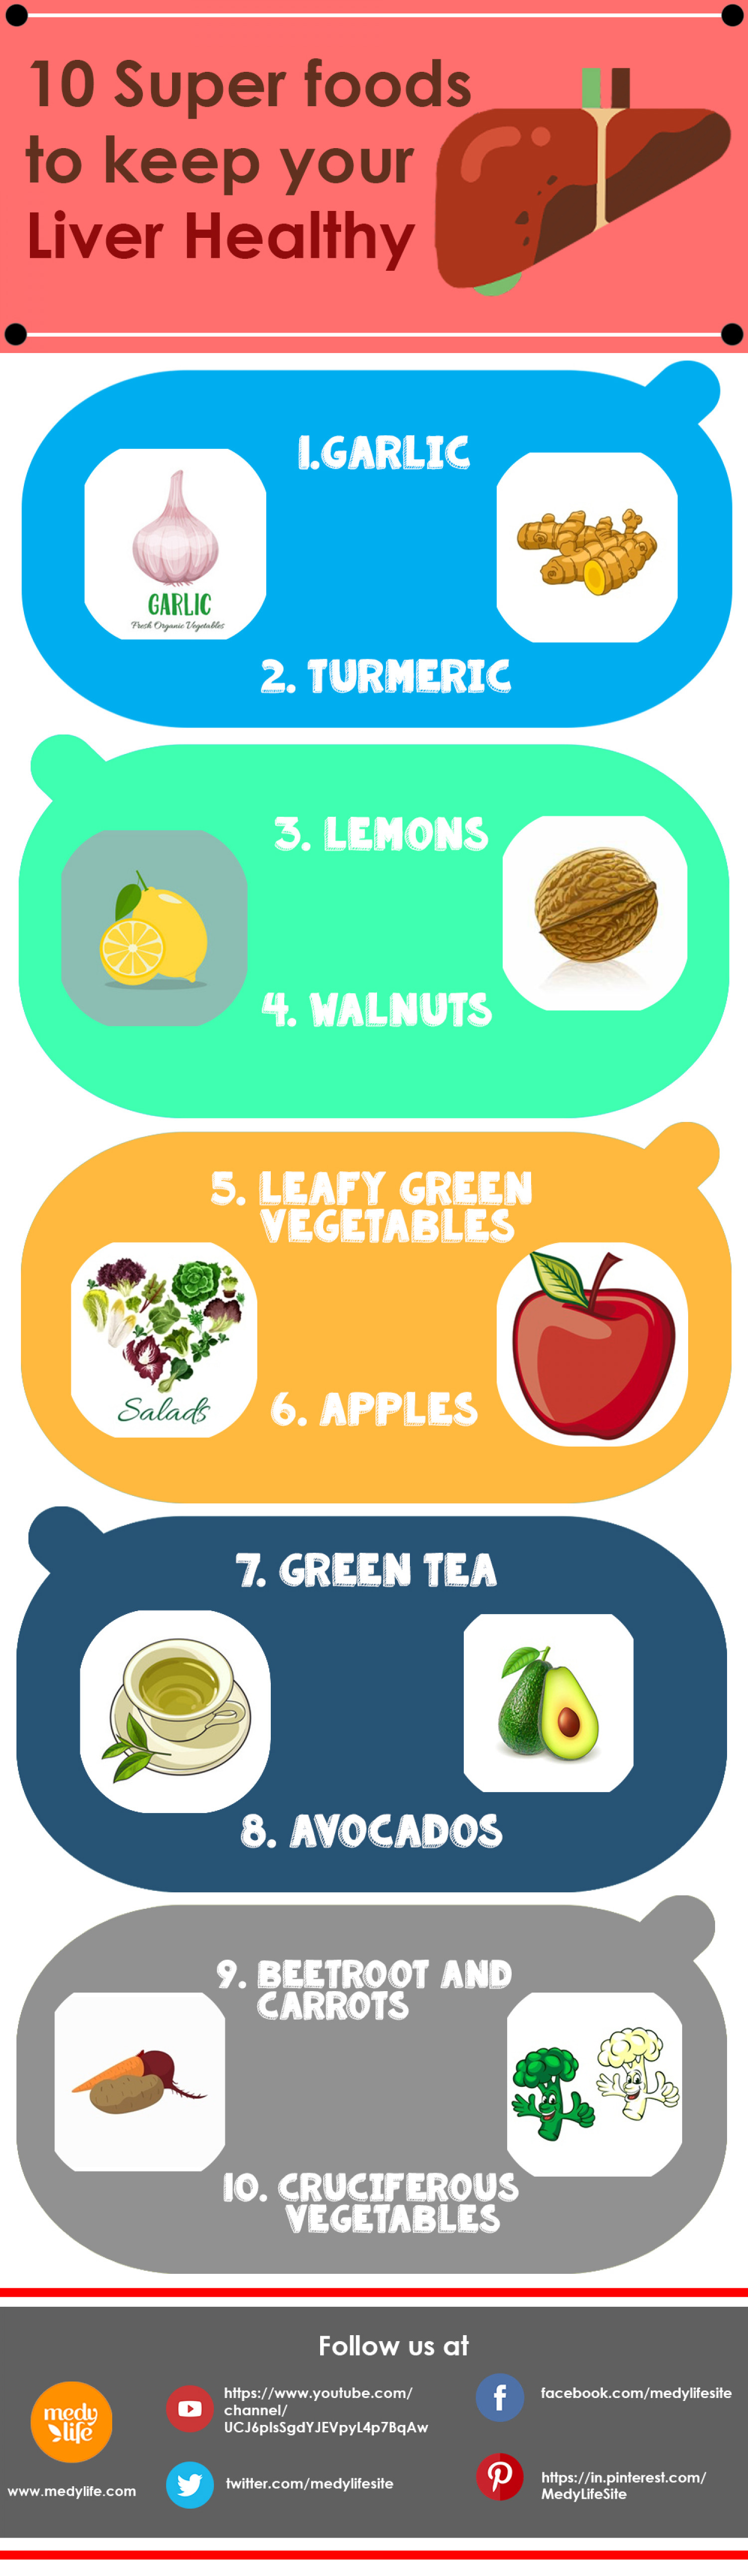 10 Secret Super foods to keep your Liver Healthy Infographic